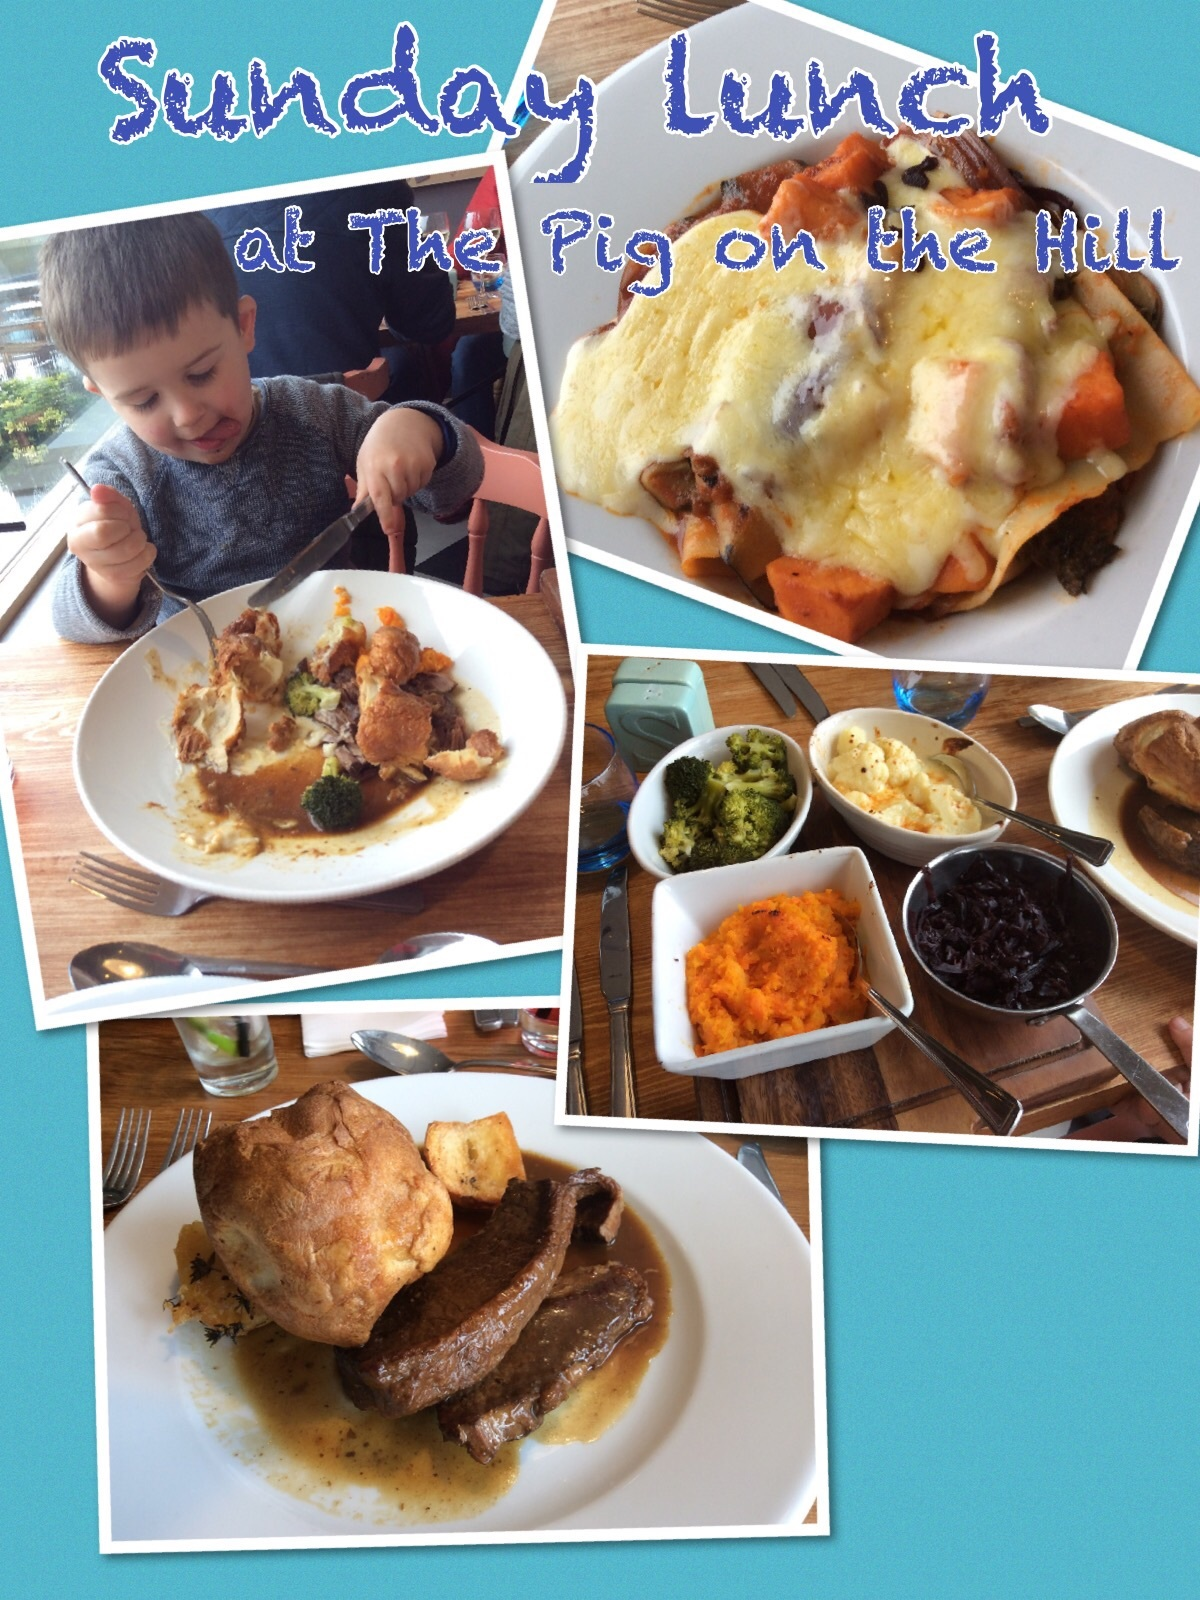 Sunday lunch at The Pig on the Hill